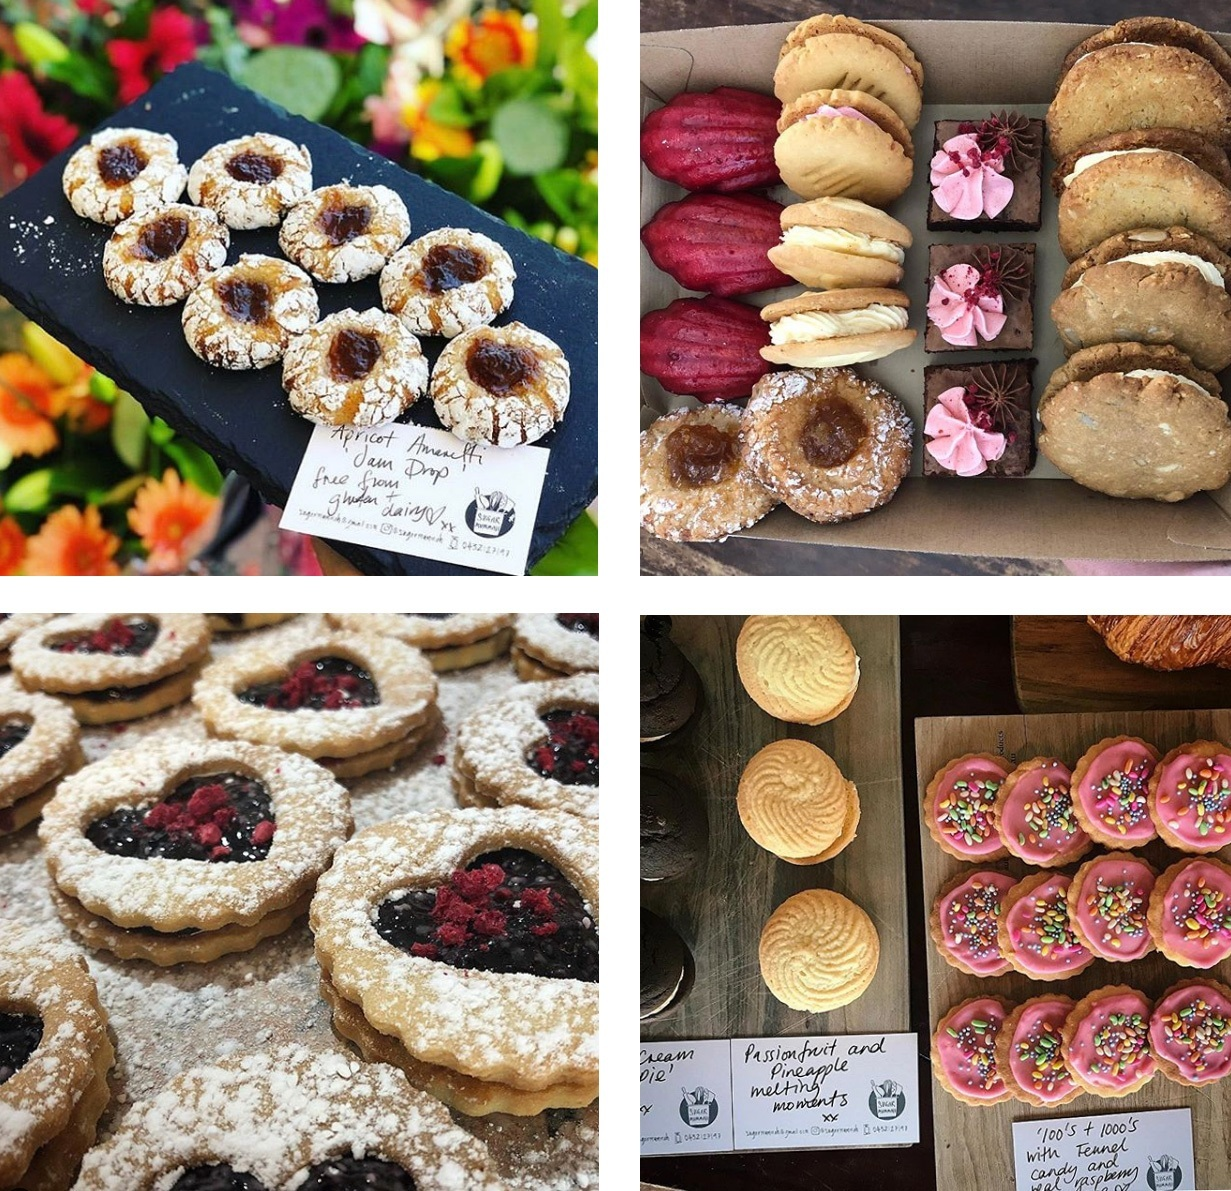 YUM! As you can see from the photos (   check out Sugar Mummah IG here   ), Frea's bakes are stunning works of art as well as being extremely delicious    (I have been lucky enough to taste some of her bakes on one of her visits to the UK. )